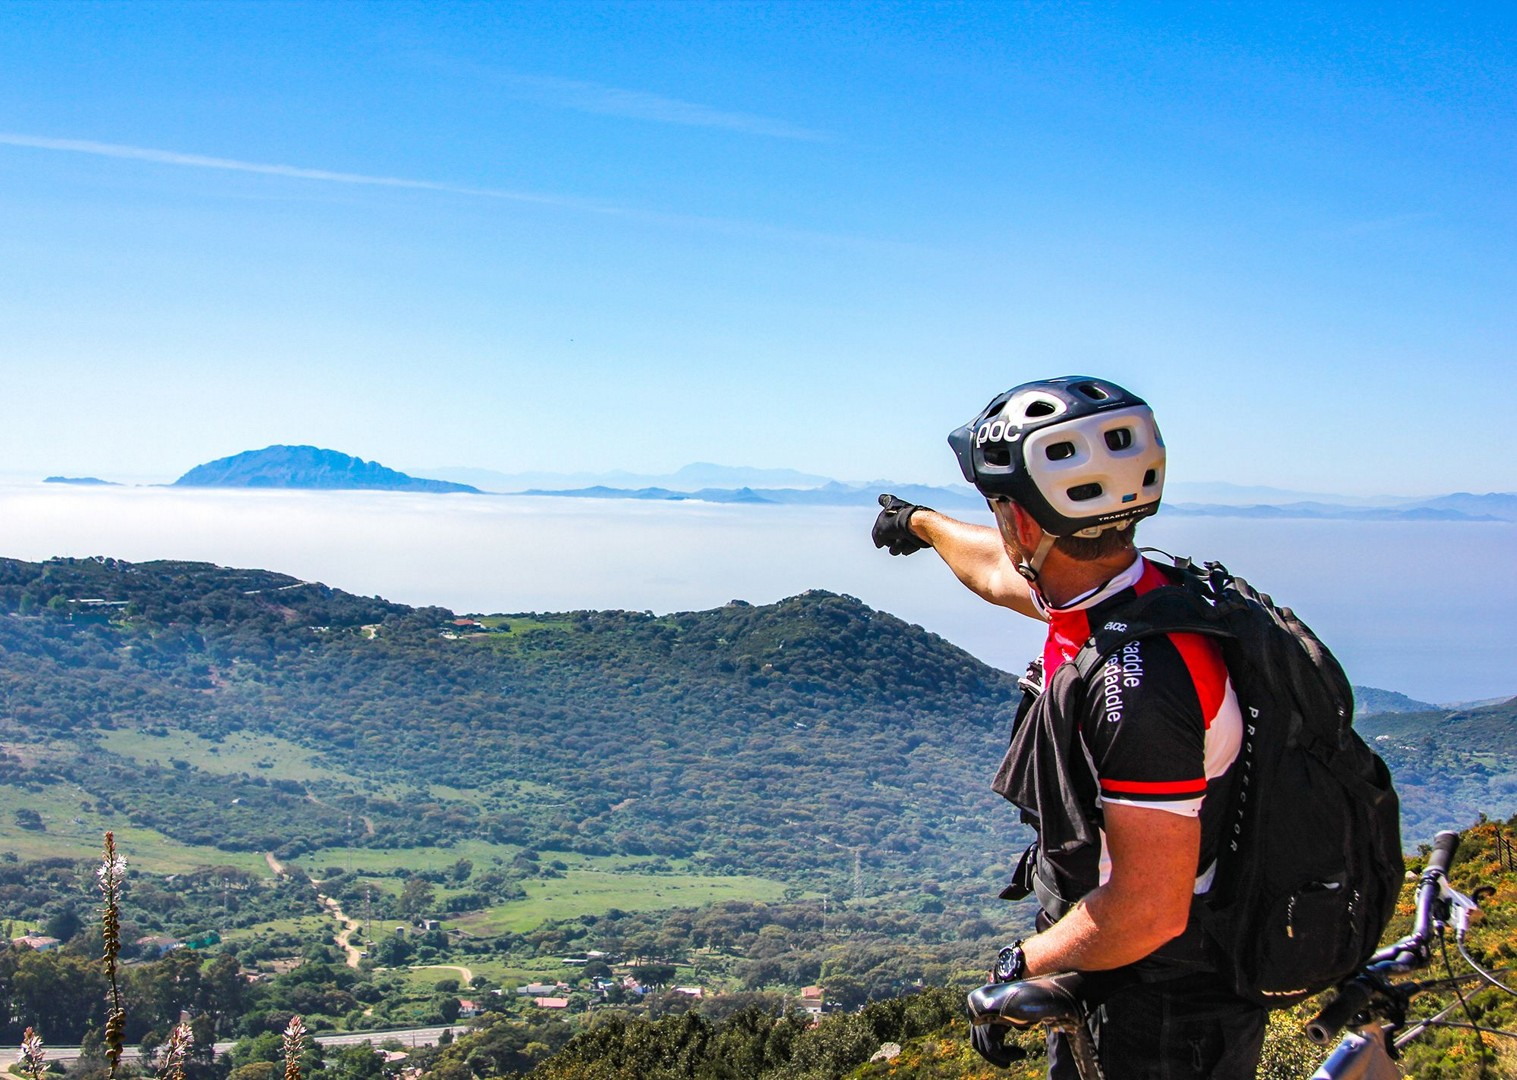 scenery-and-landscapes-spain-holiday-biking-mountain-bike-tour-saddle-skedaddle.jpg - Spain - Trans Andaluz - Guided Mountain Bike Holiday - Mountain Biking